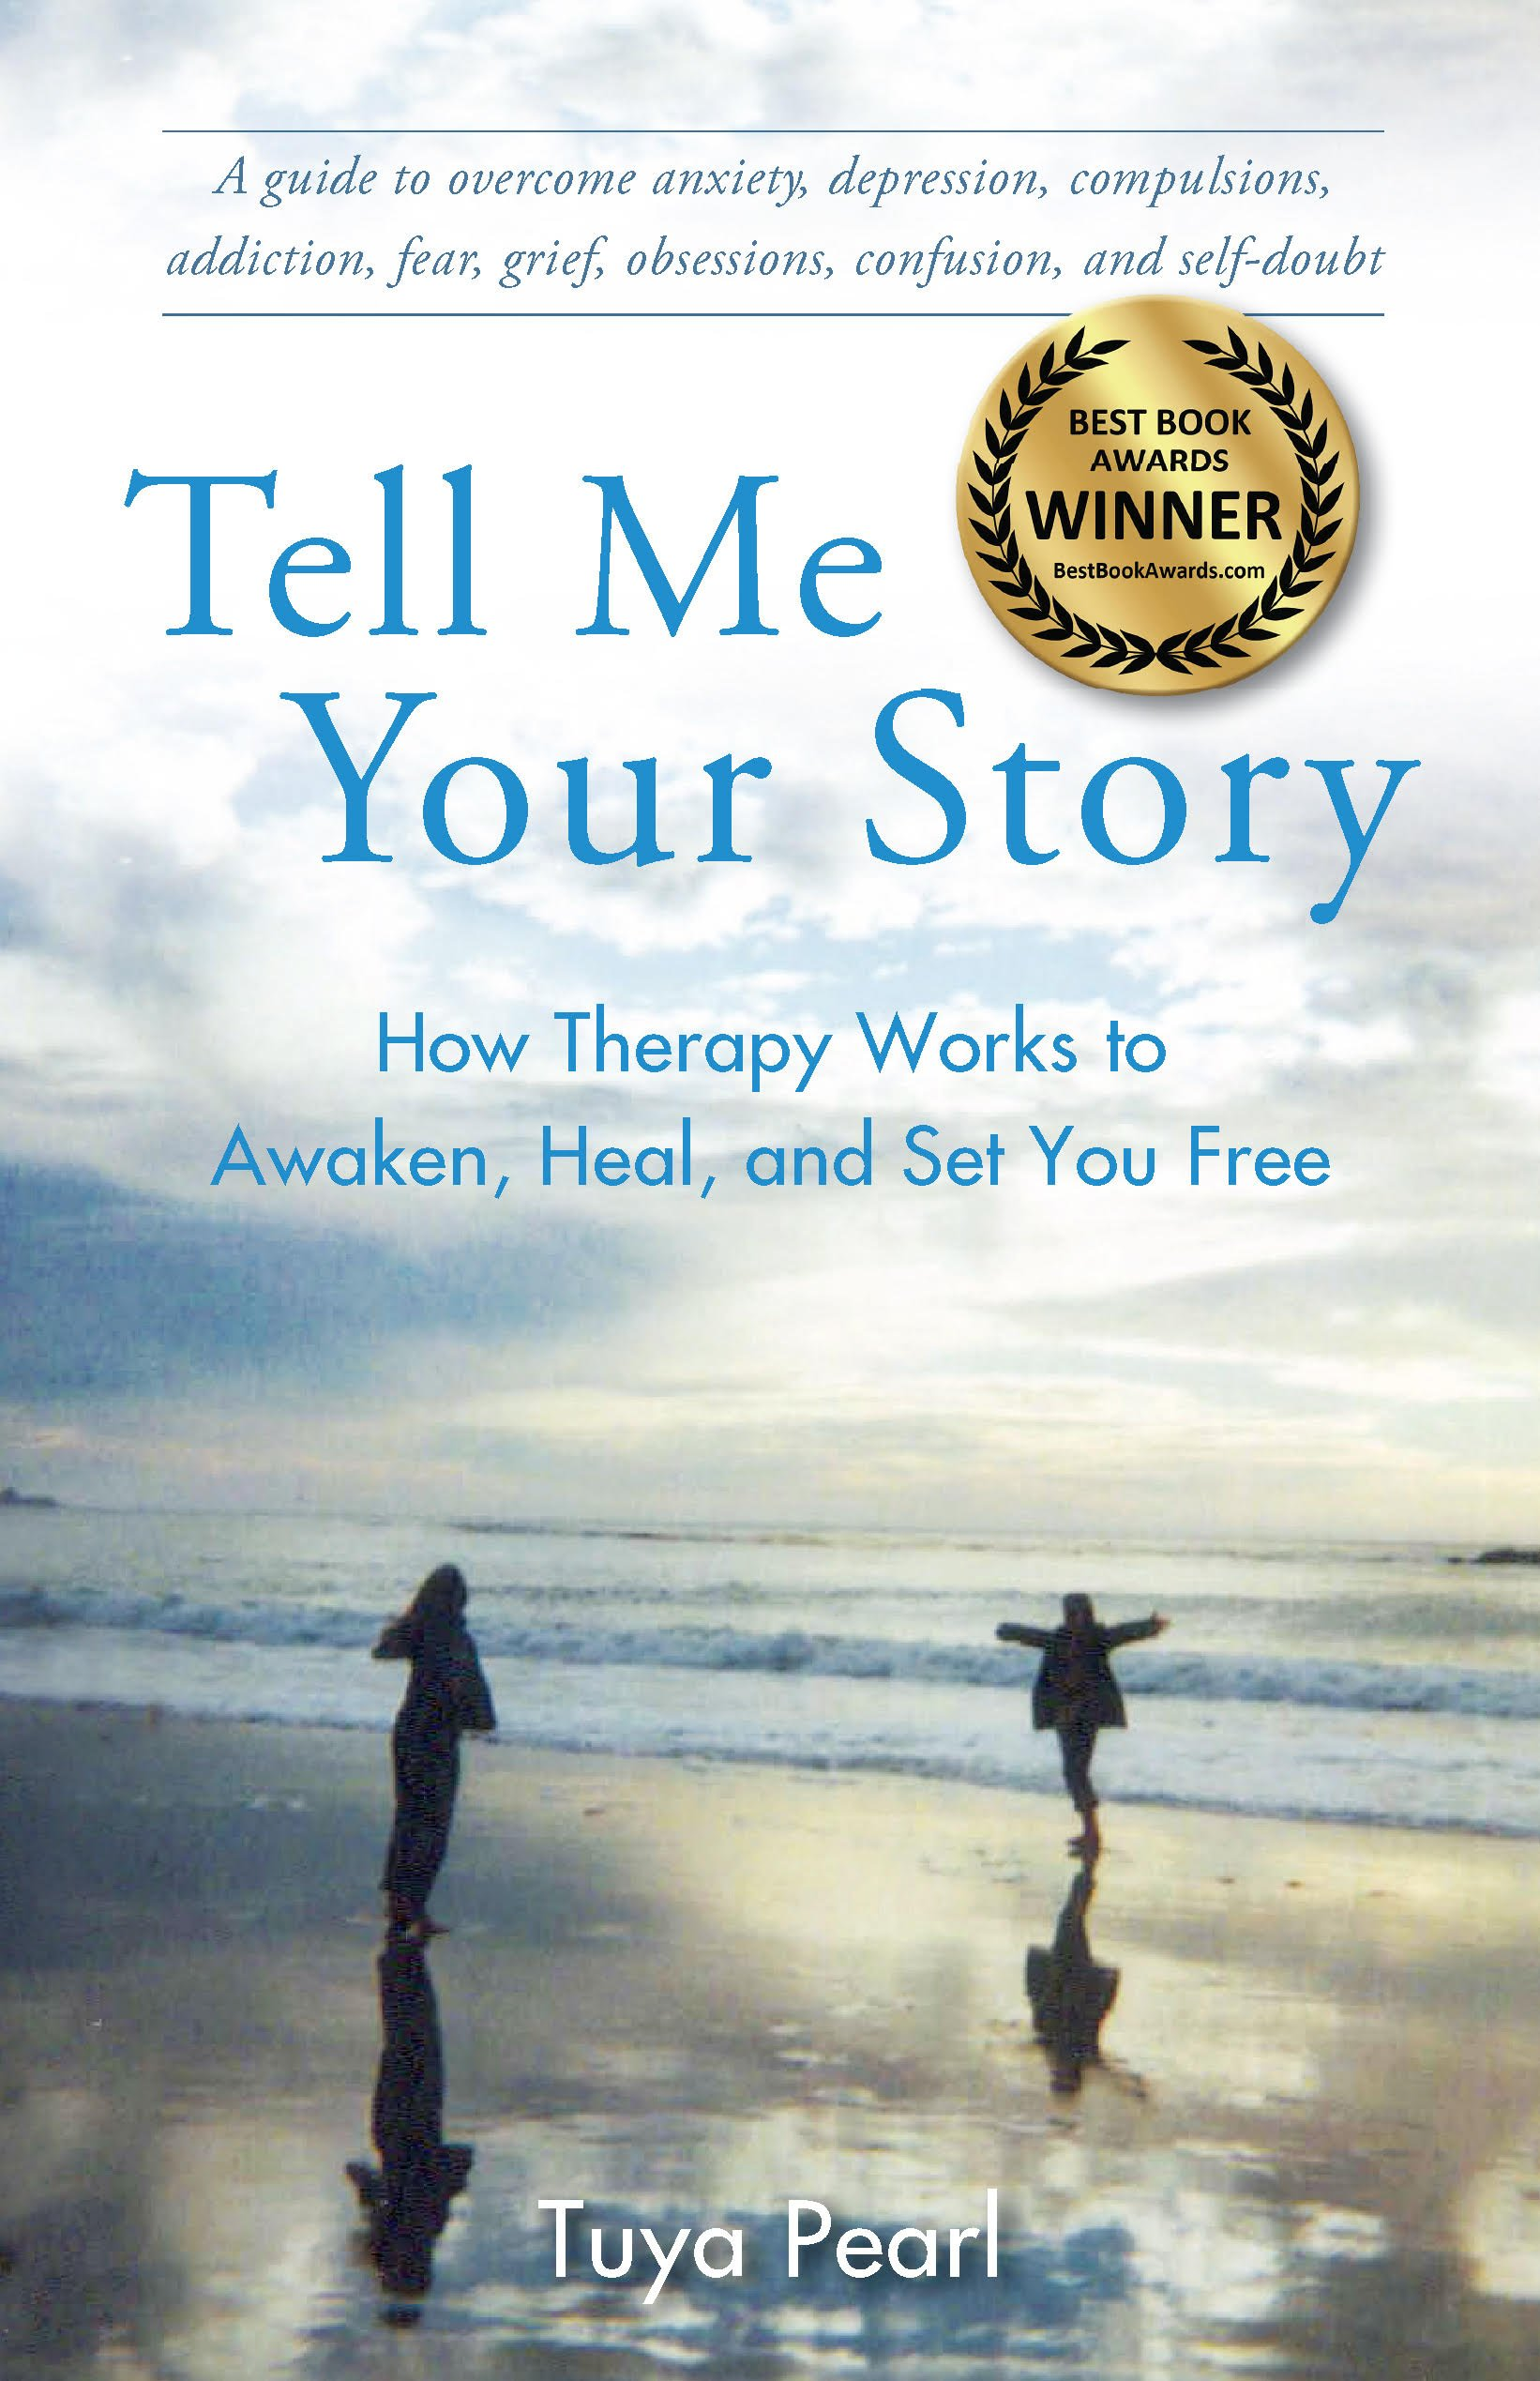 Tell Me Your Story: How Therapy Works to Awaken, Heal, and Set You